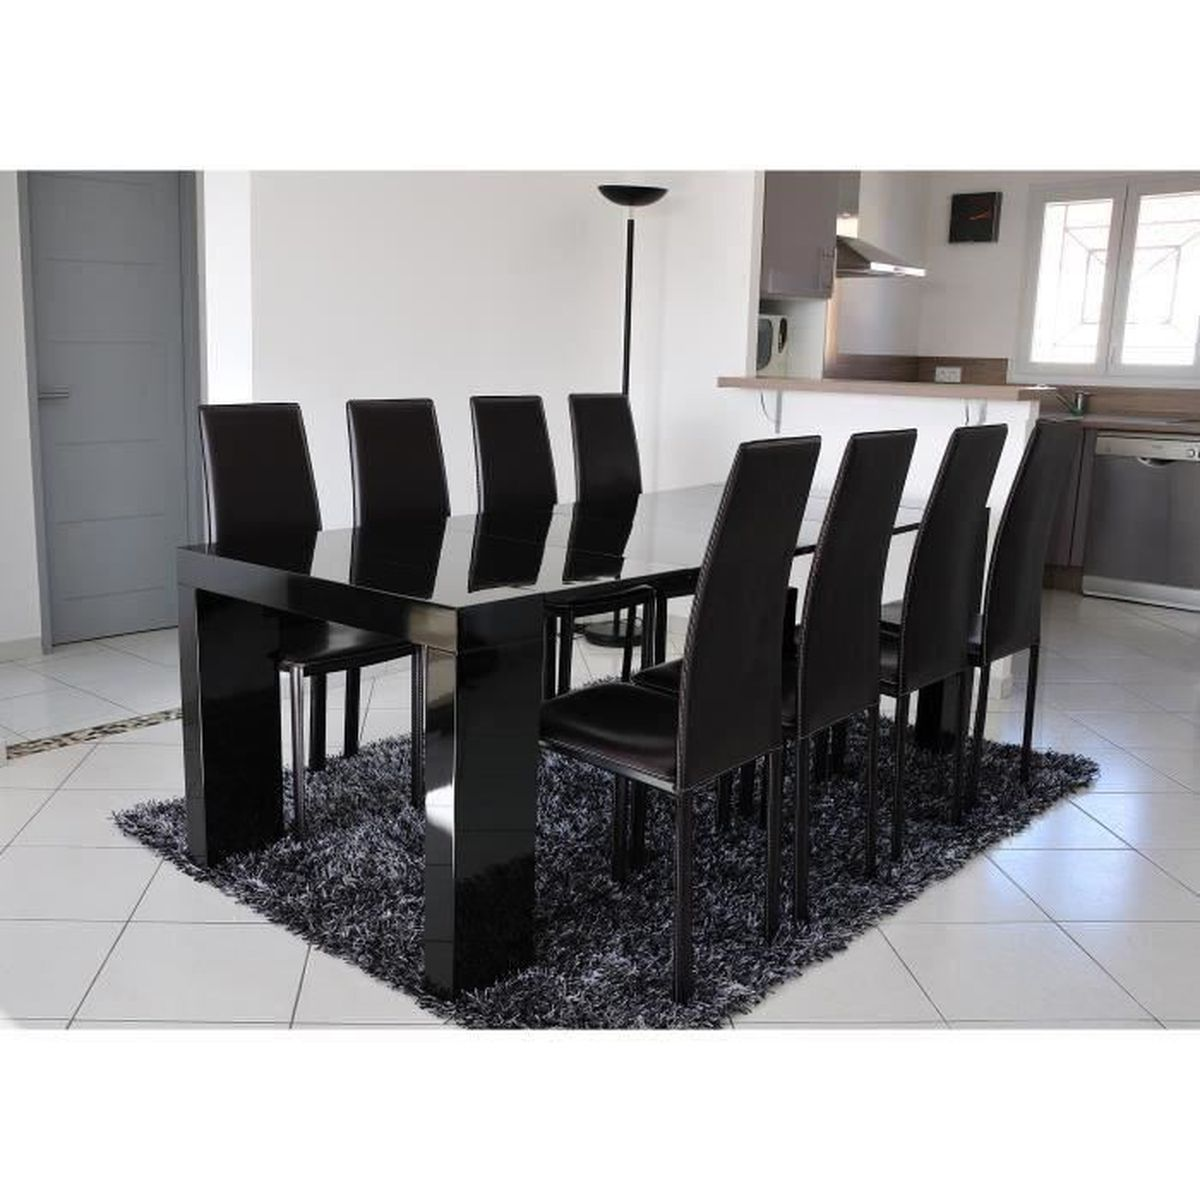 Table console extensible wenge - Achat / Vente Table console ...